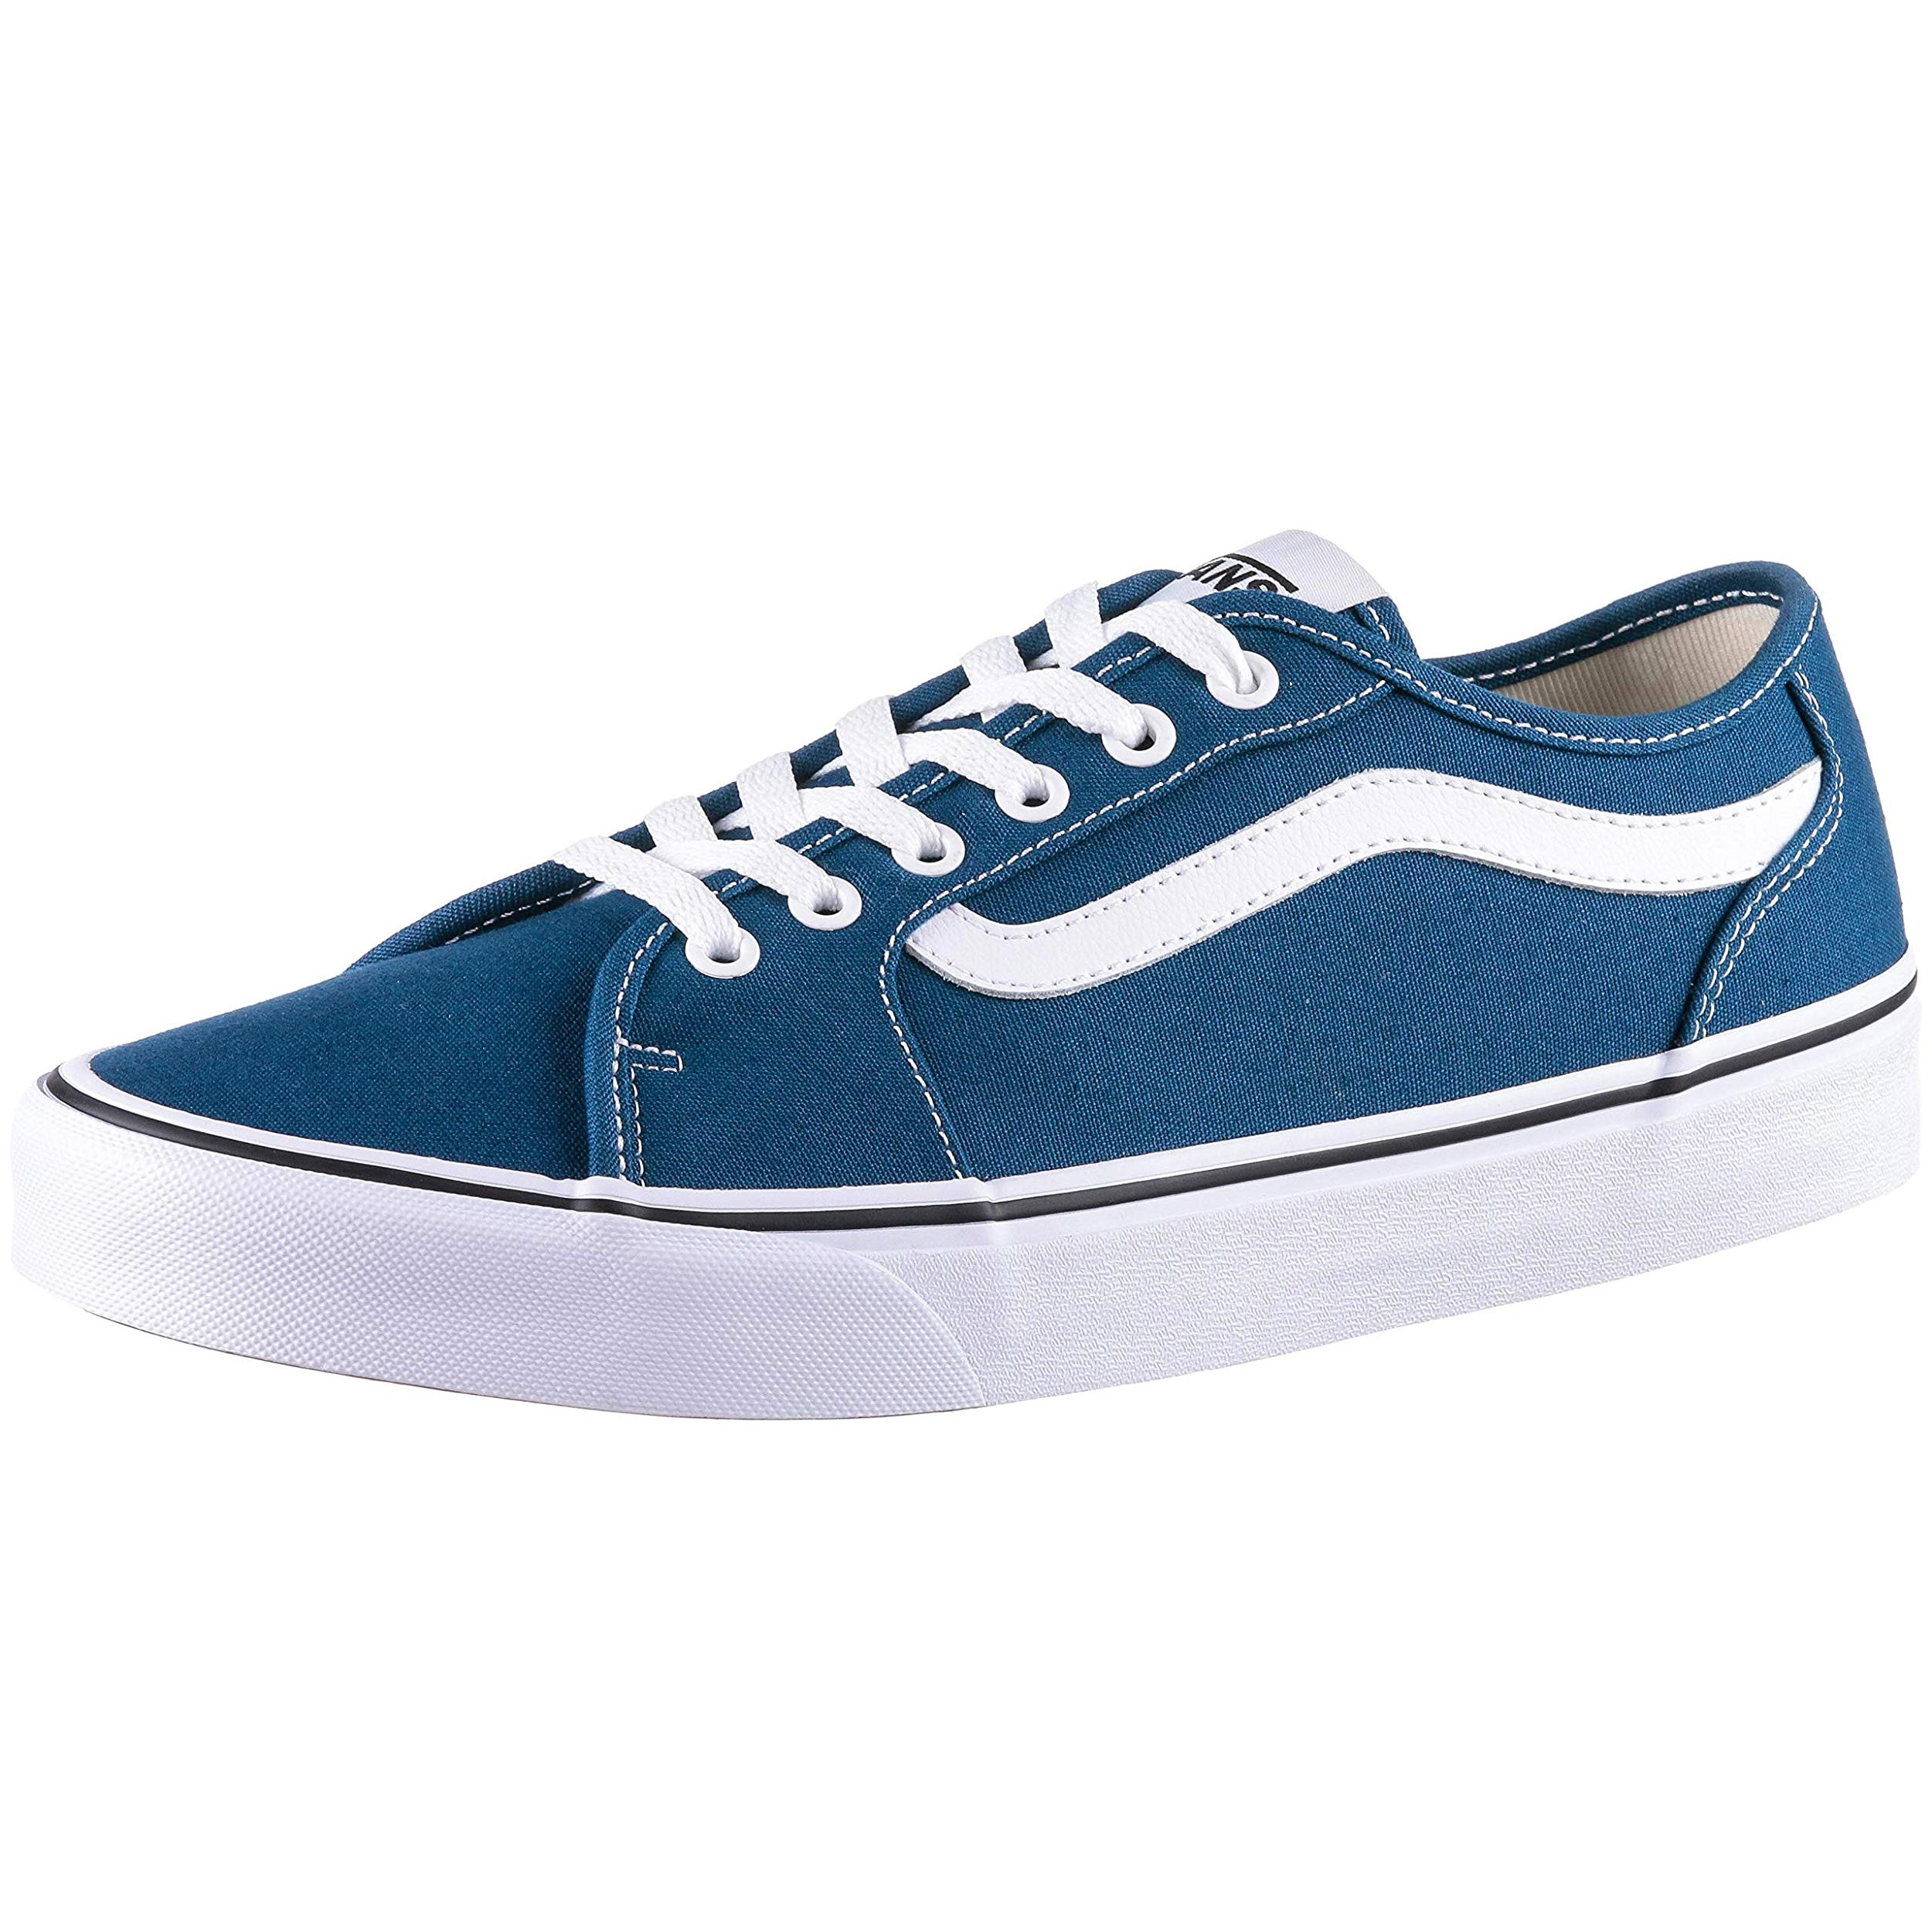 8f96b0977790 Vans men filmore decon shoes sailor blue white jean scene jpg 2500x2500 Scene  shoes